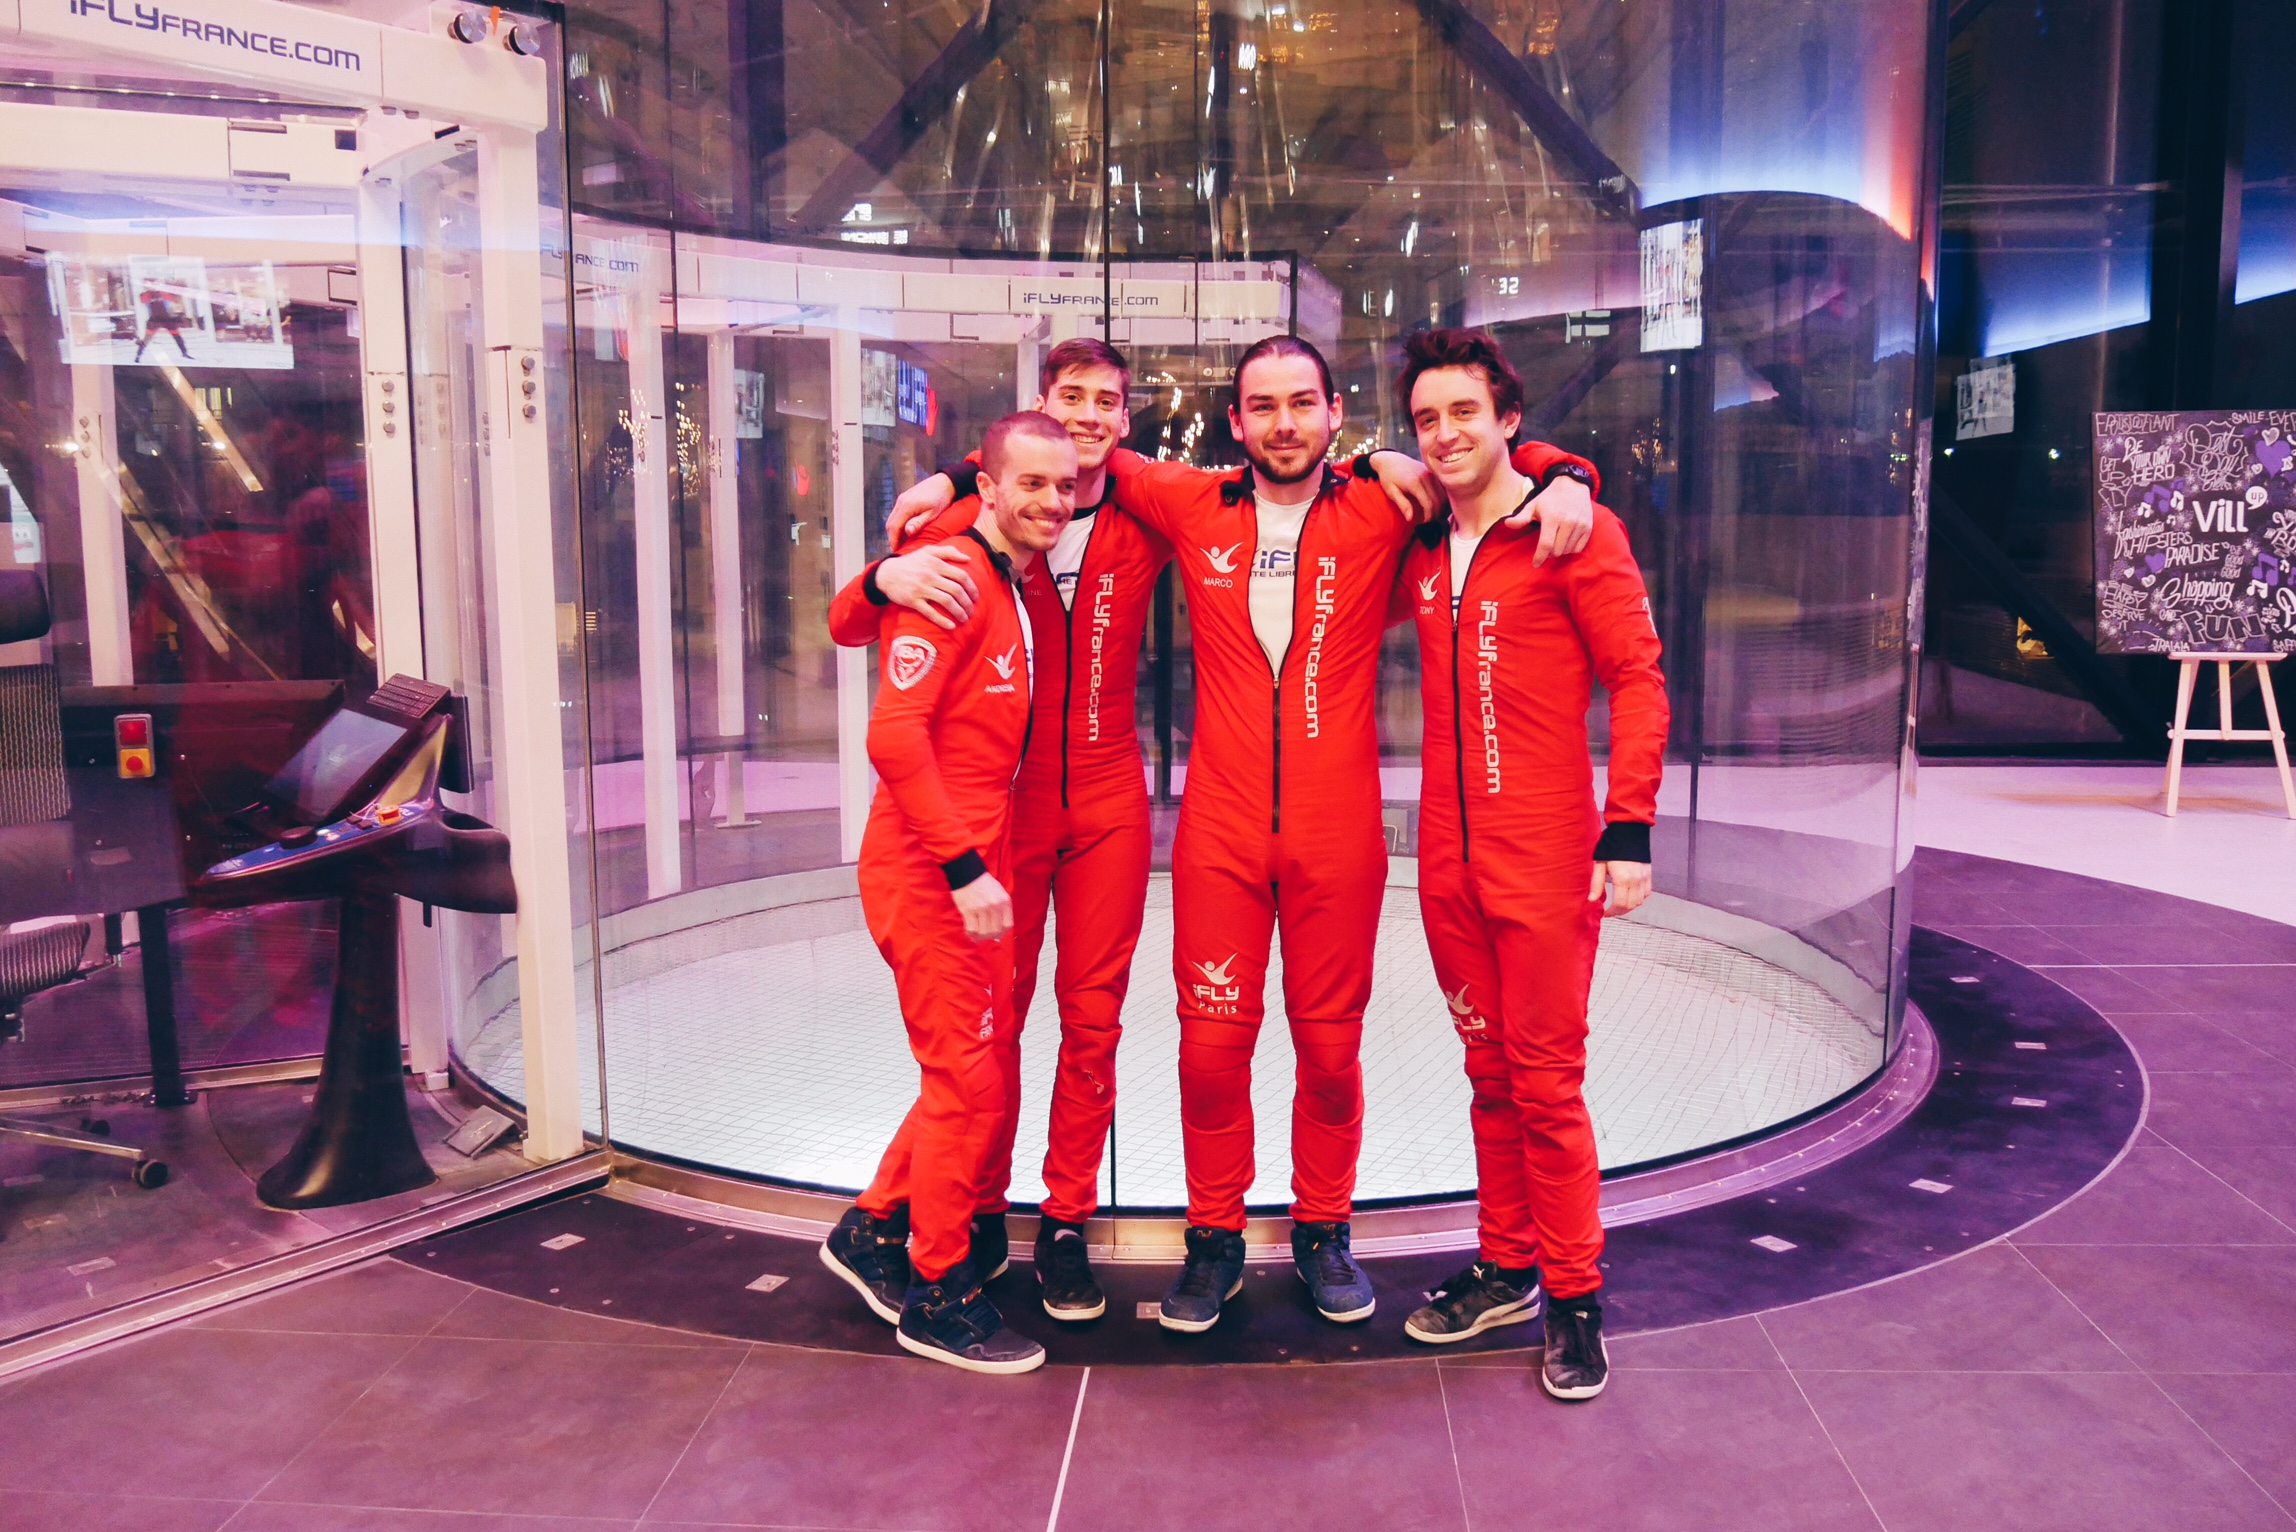 Vill-Up-équipe-moniteurs-simulateur-chute-libre-indoor-Ifly-France-La-Villette-Paris-photo-usofparis-blog